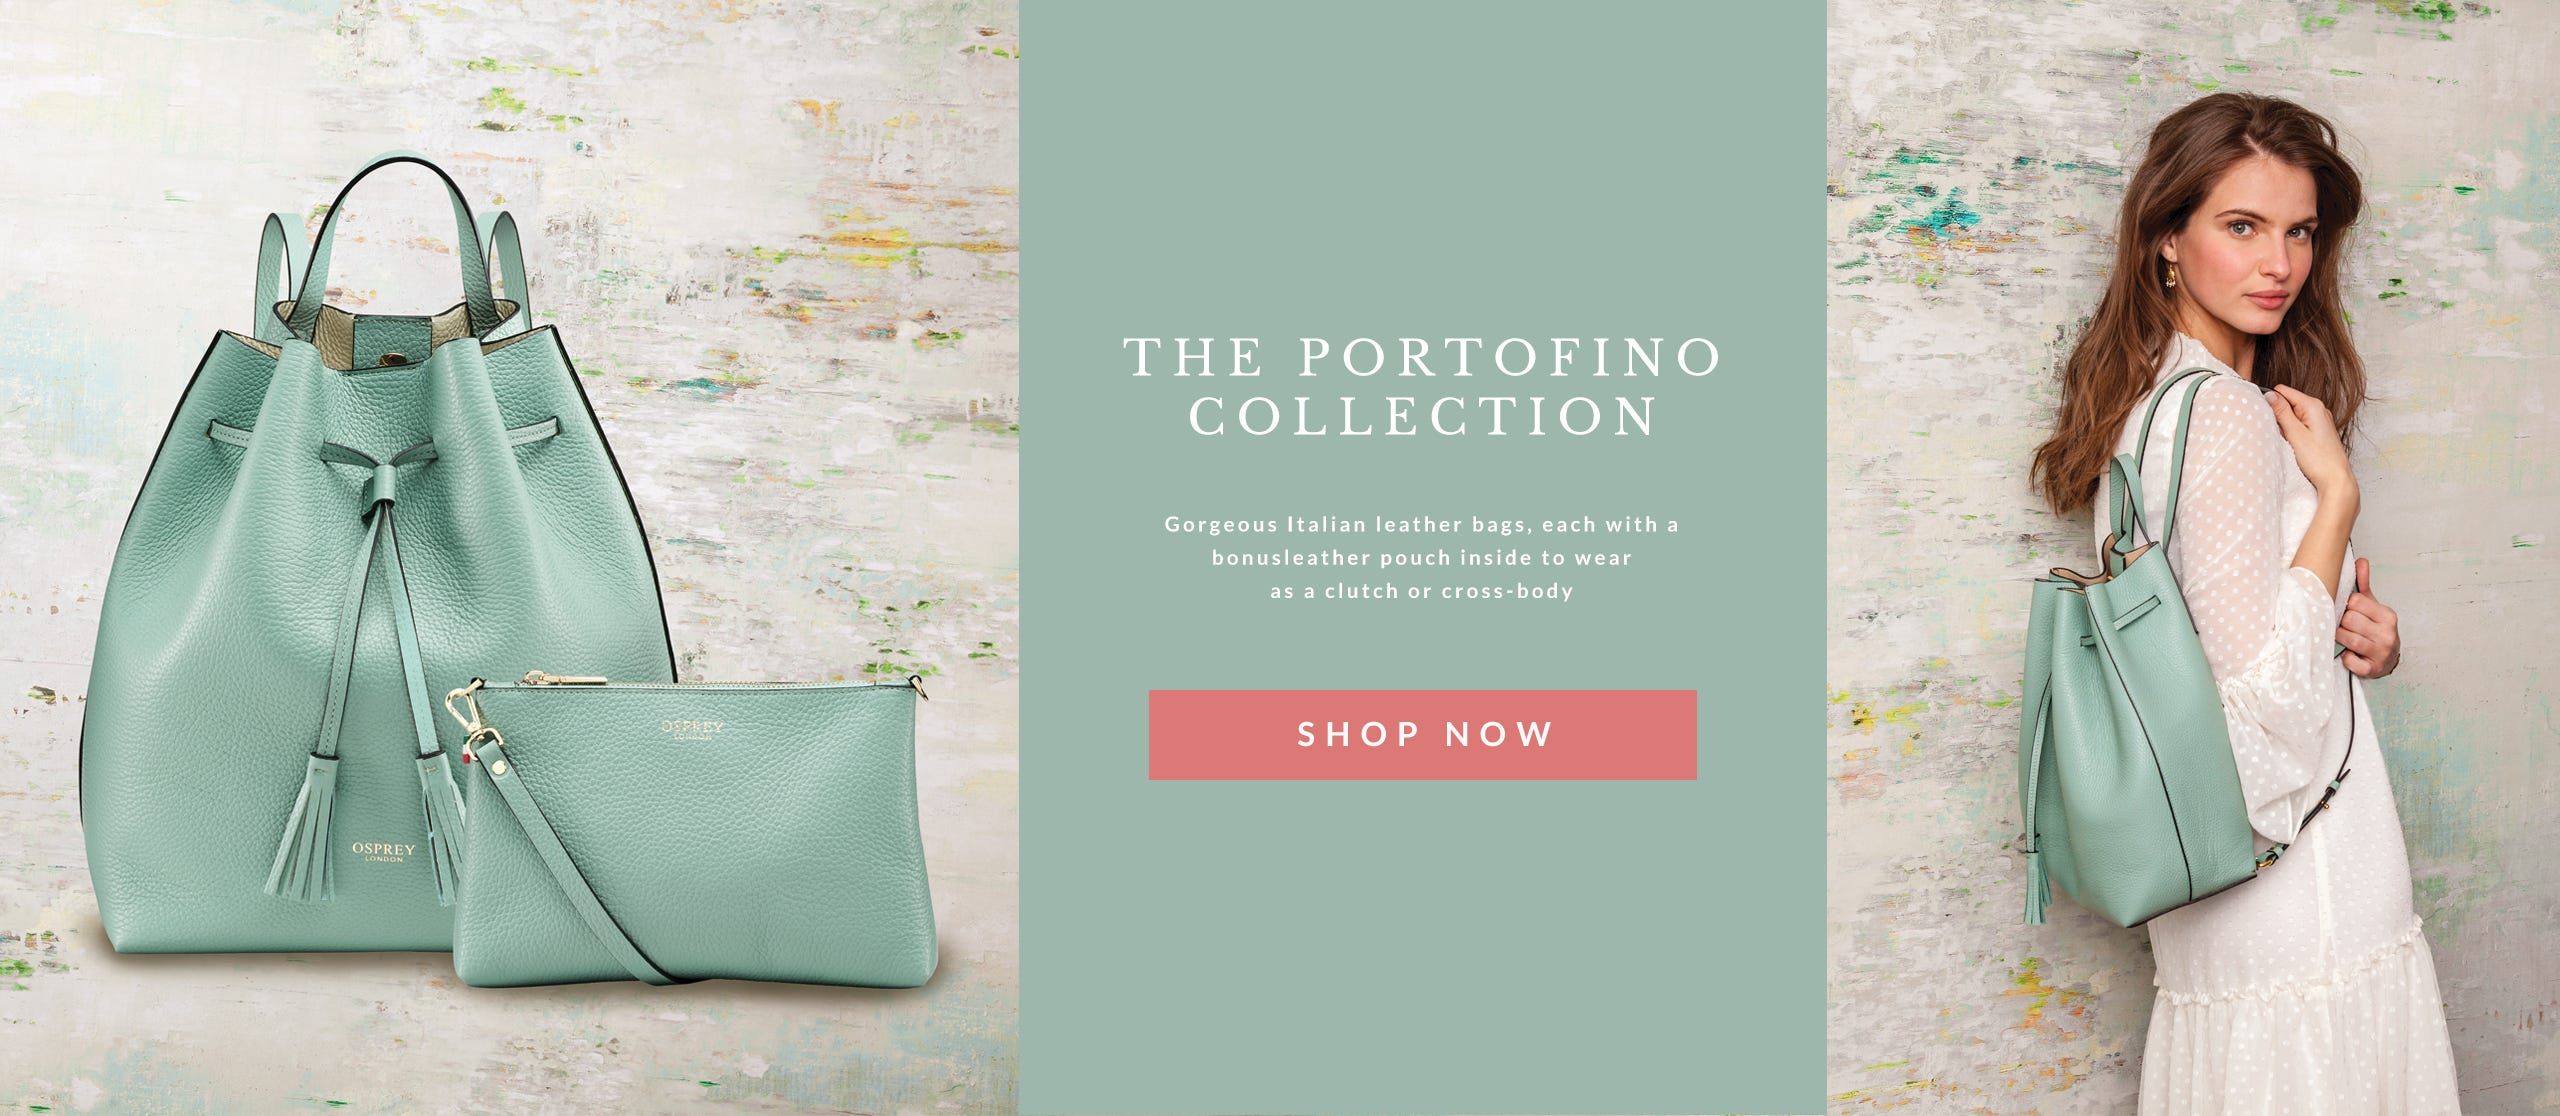 OSPREY LONDON | Portofino Collection